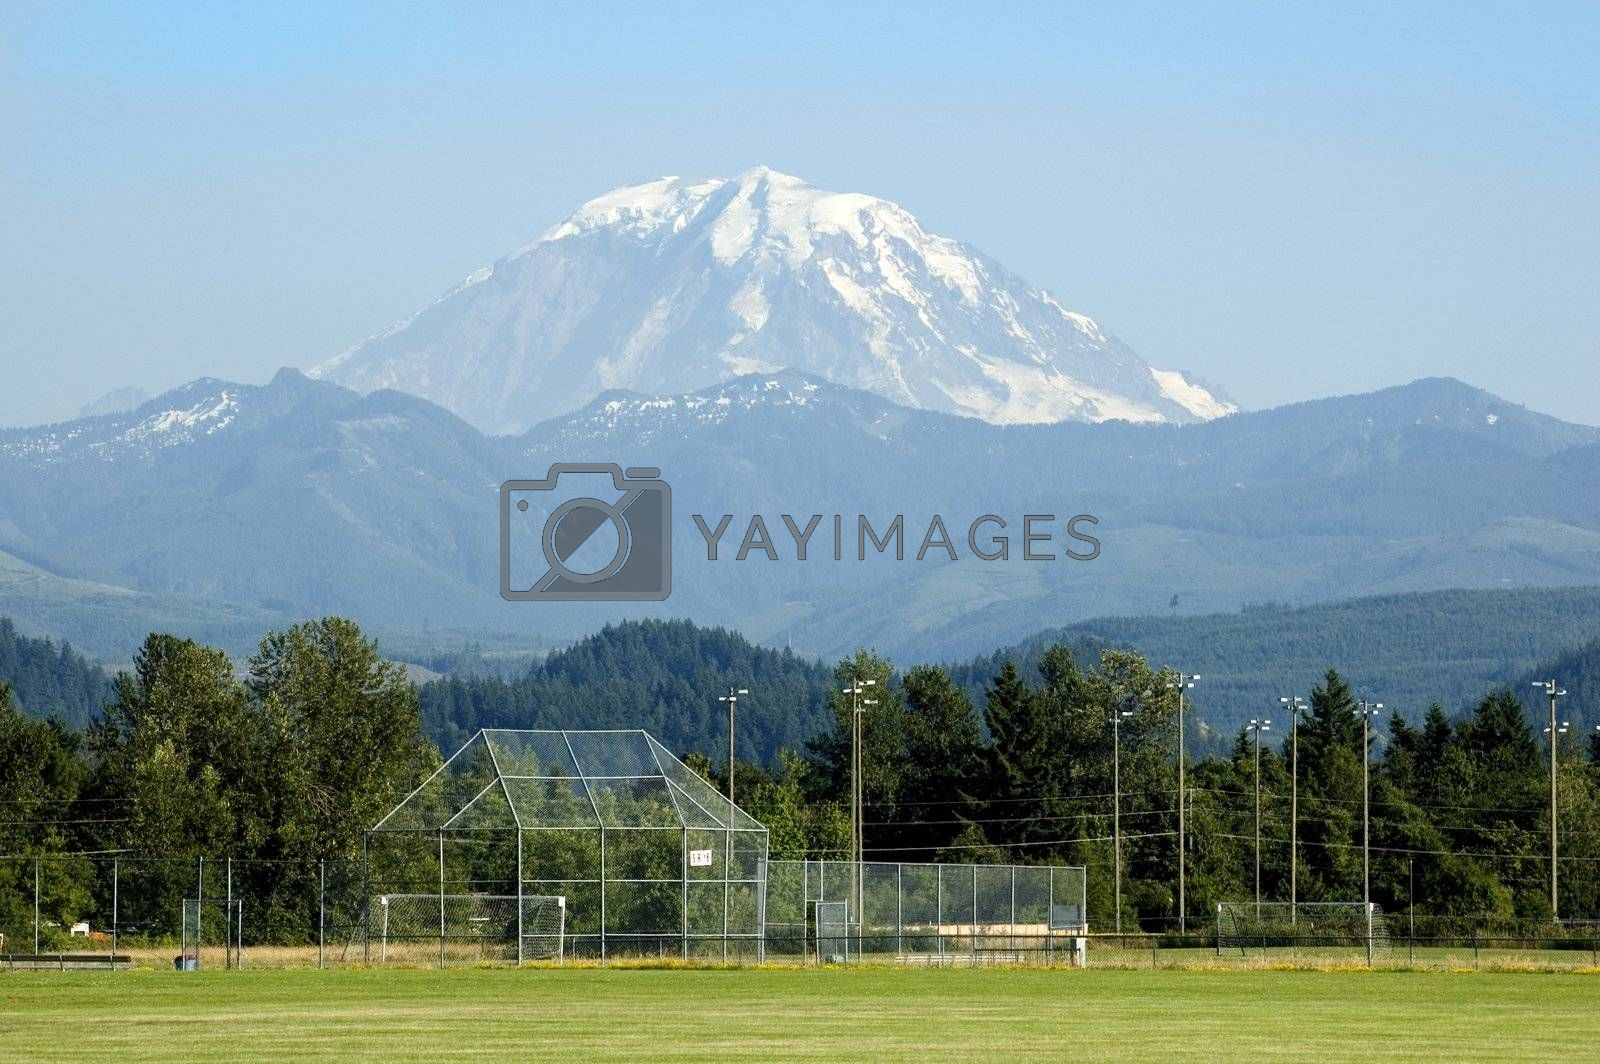 A majestic Mount Rainier towers over a soccer field in Washington State, USA.